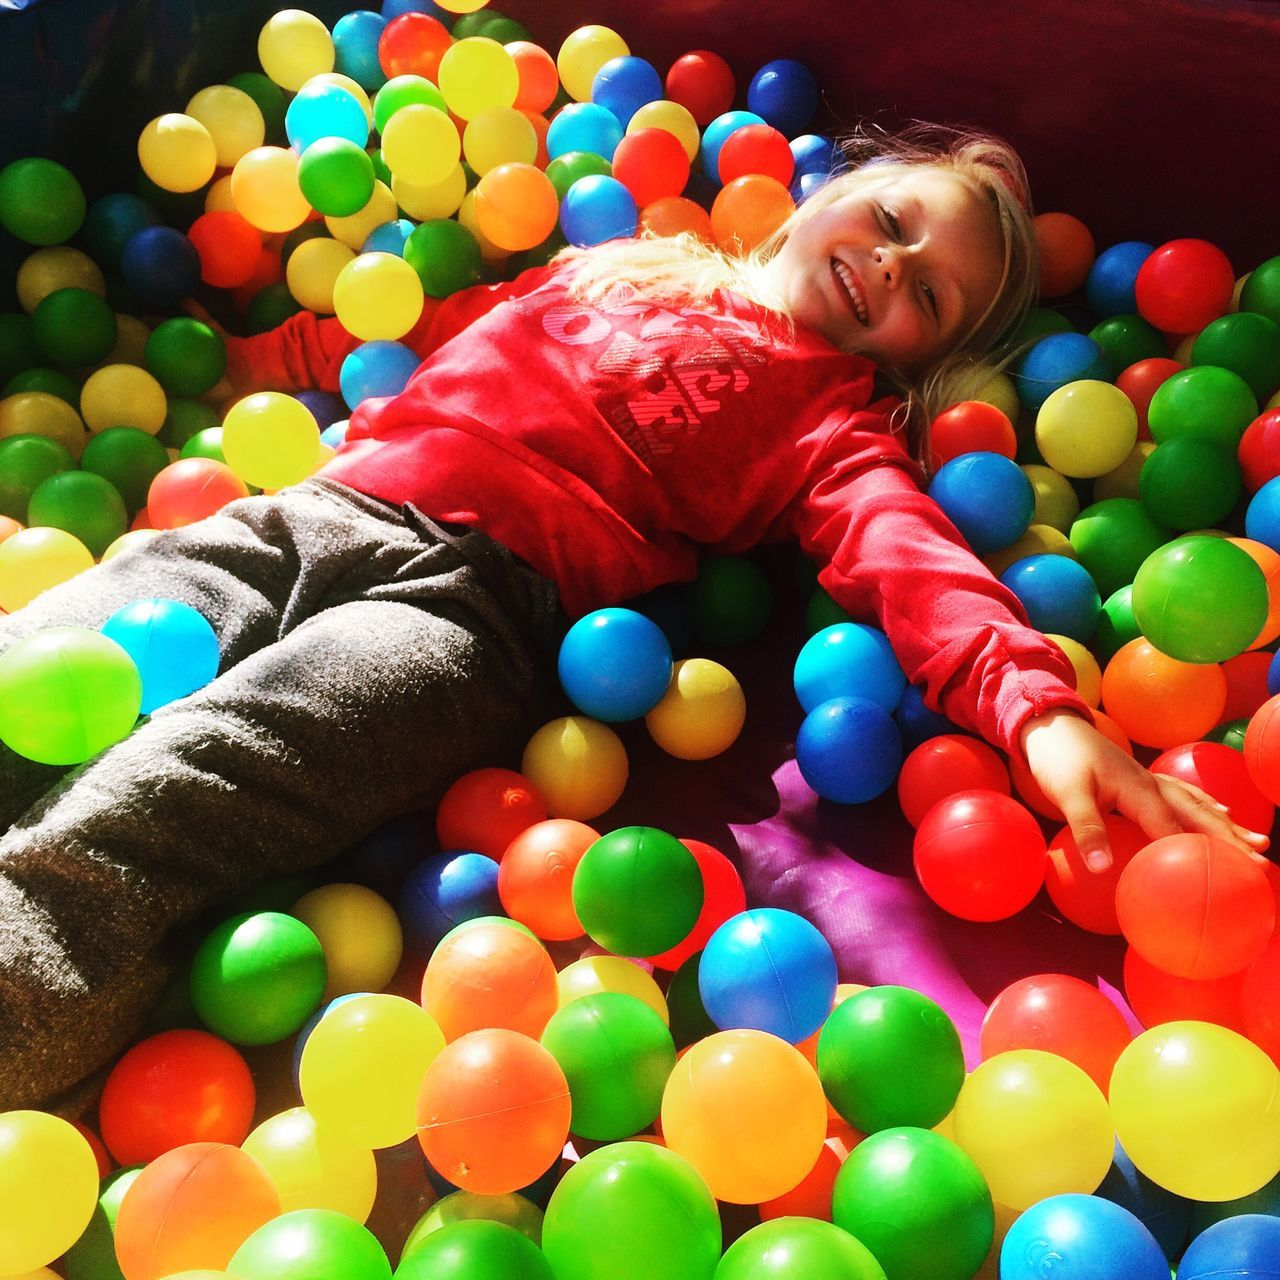 Playing Playtime! Party Time Ball Pit! Fun Hanging Out